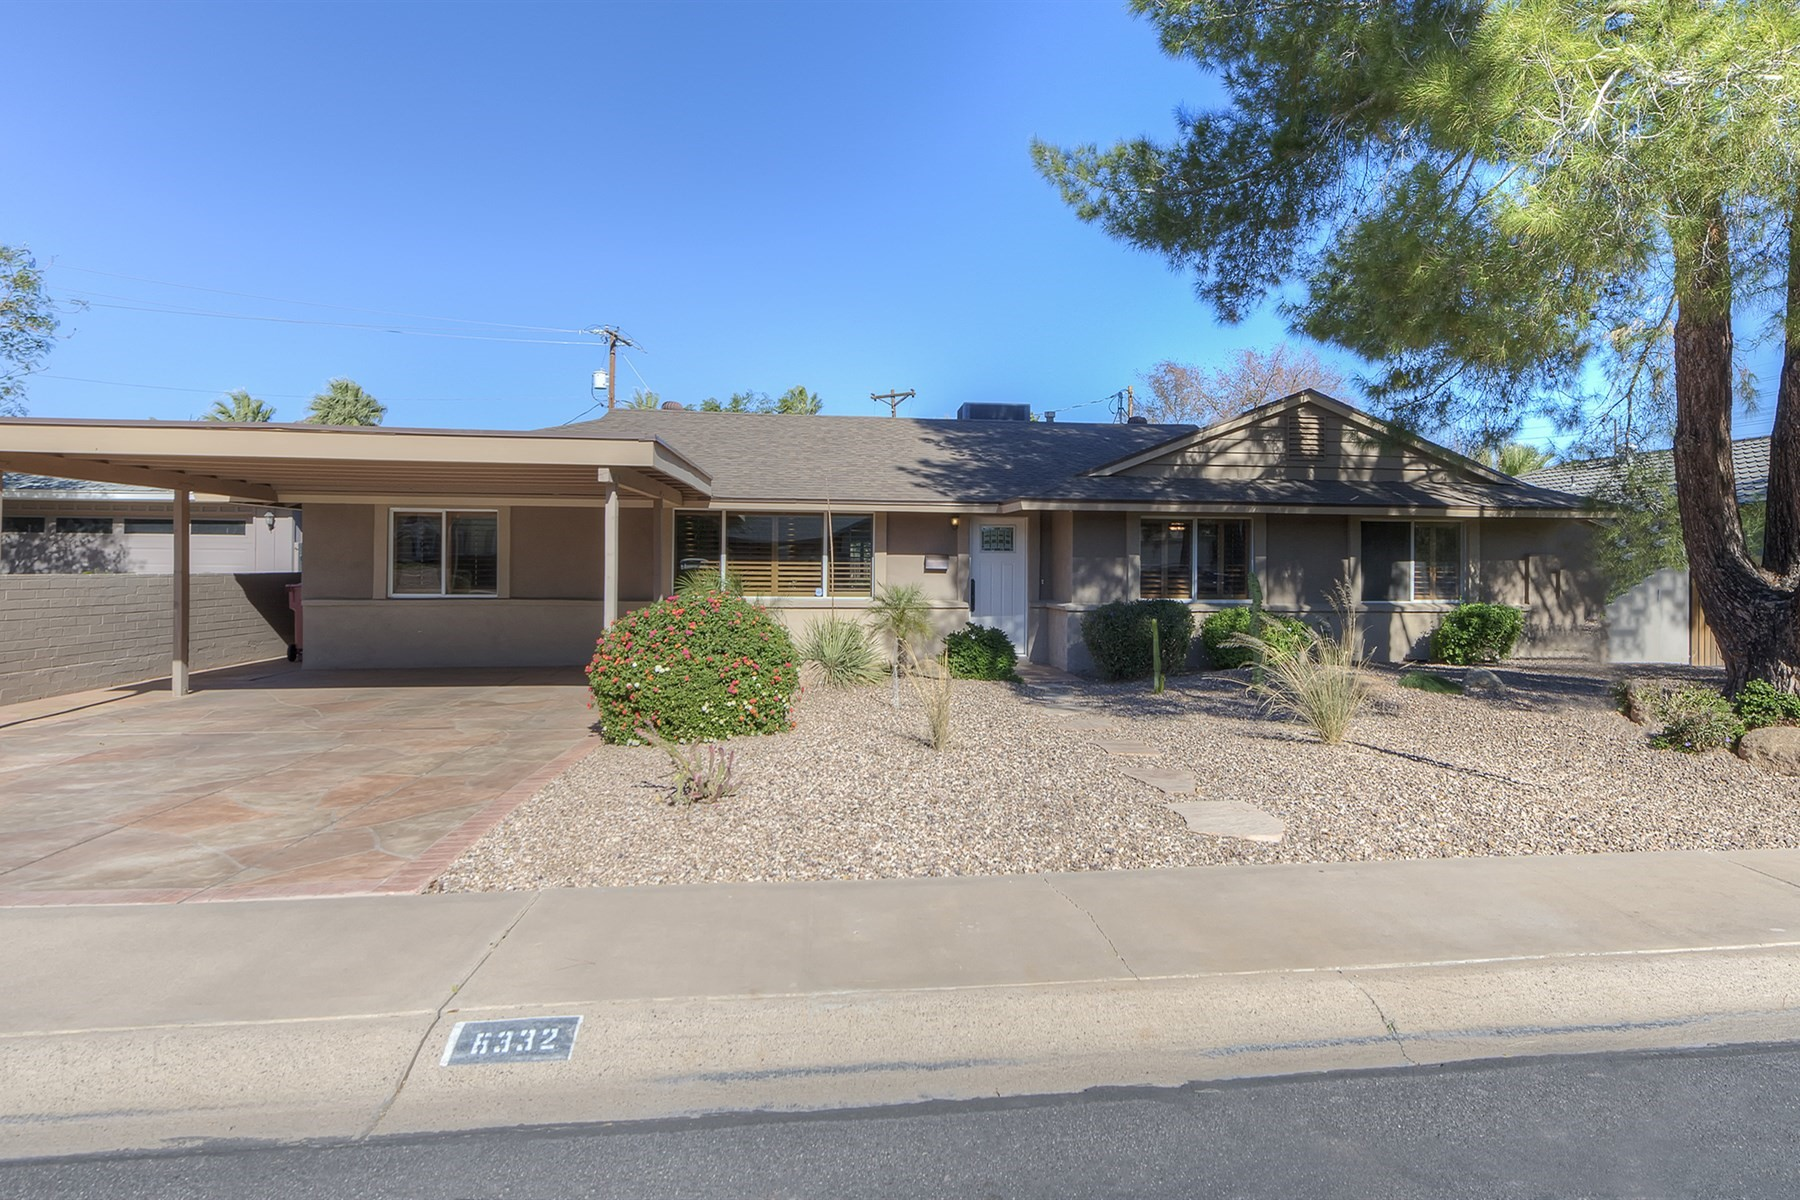 Casa Unifamiliar por un Venta en charming ranch home in Melrose Meadows 6332 E Earll Dr Scottsdale, Arizona, 85251 Estados Unidos